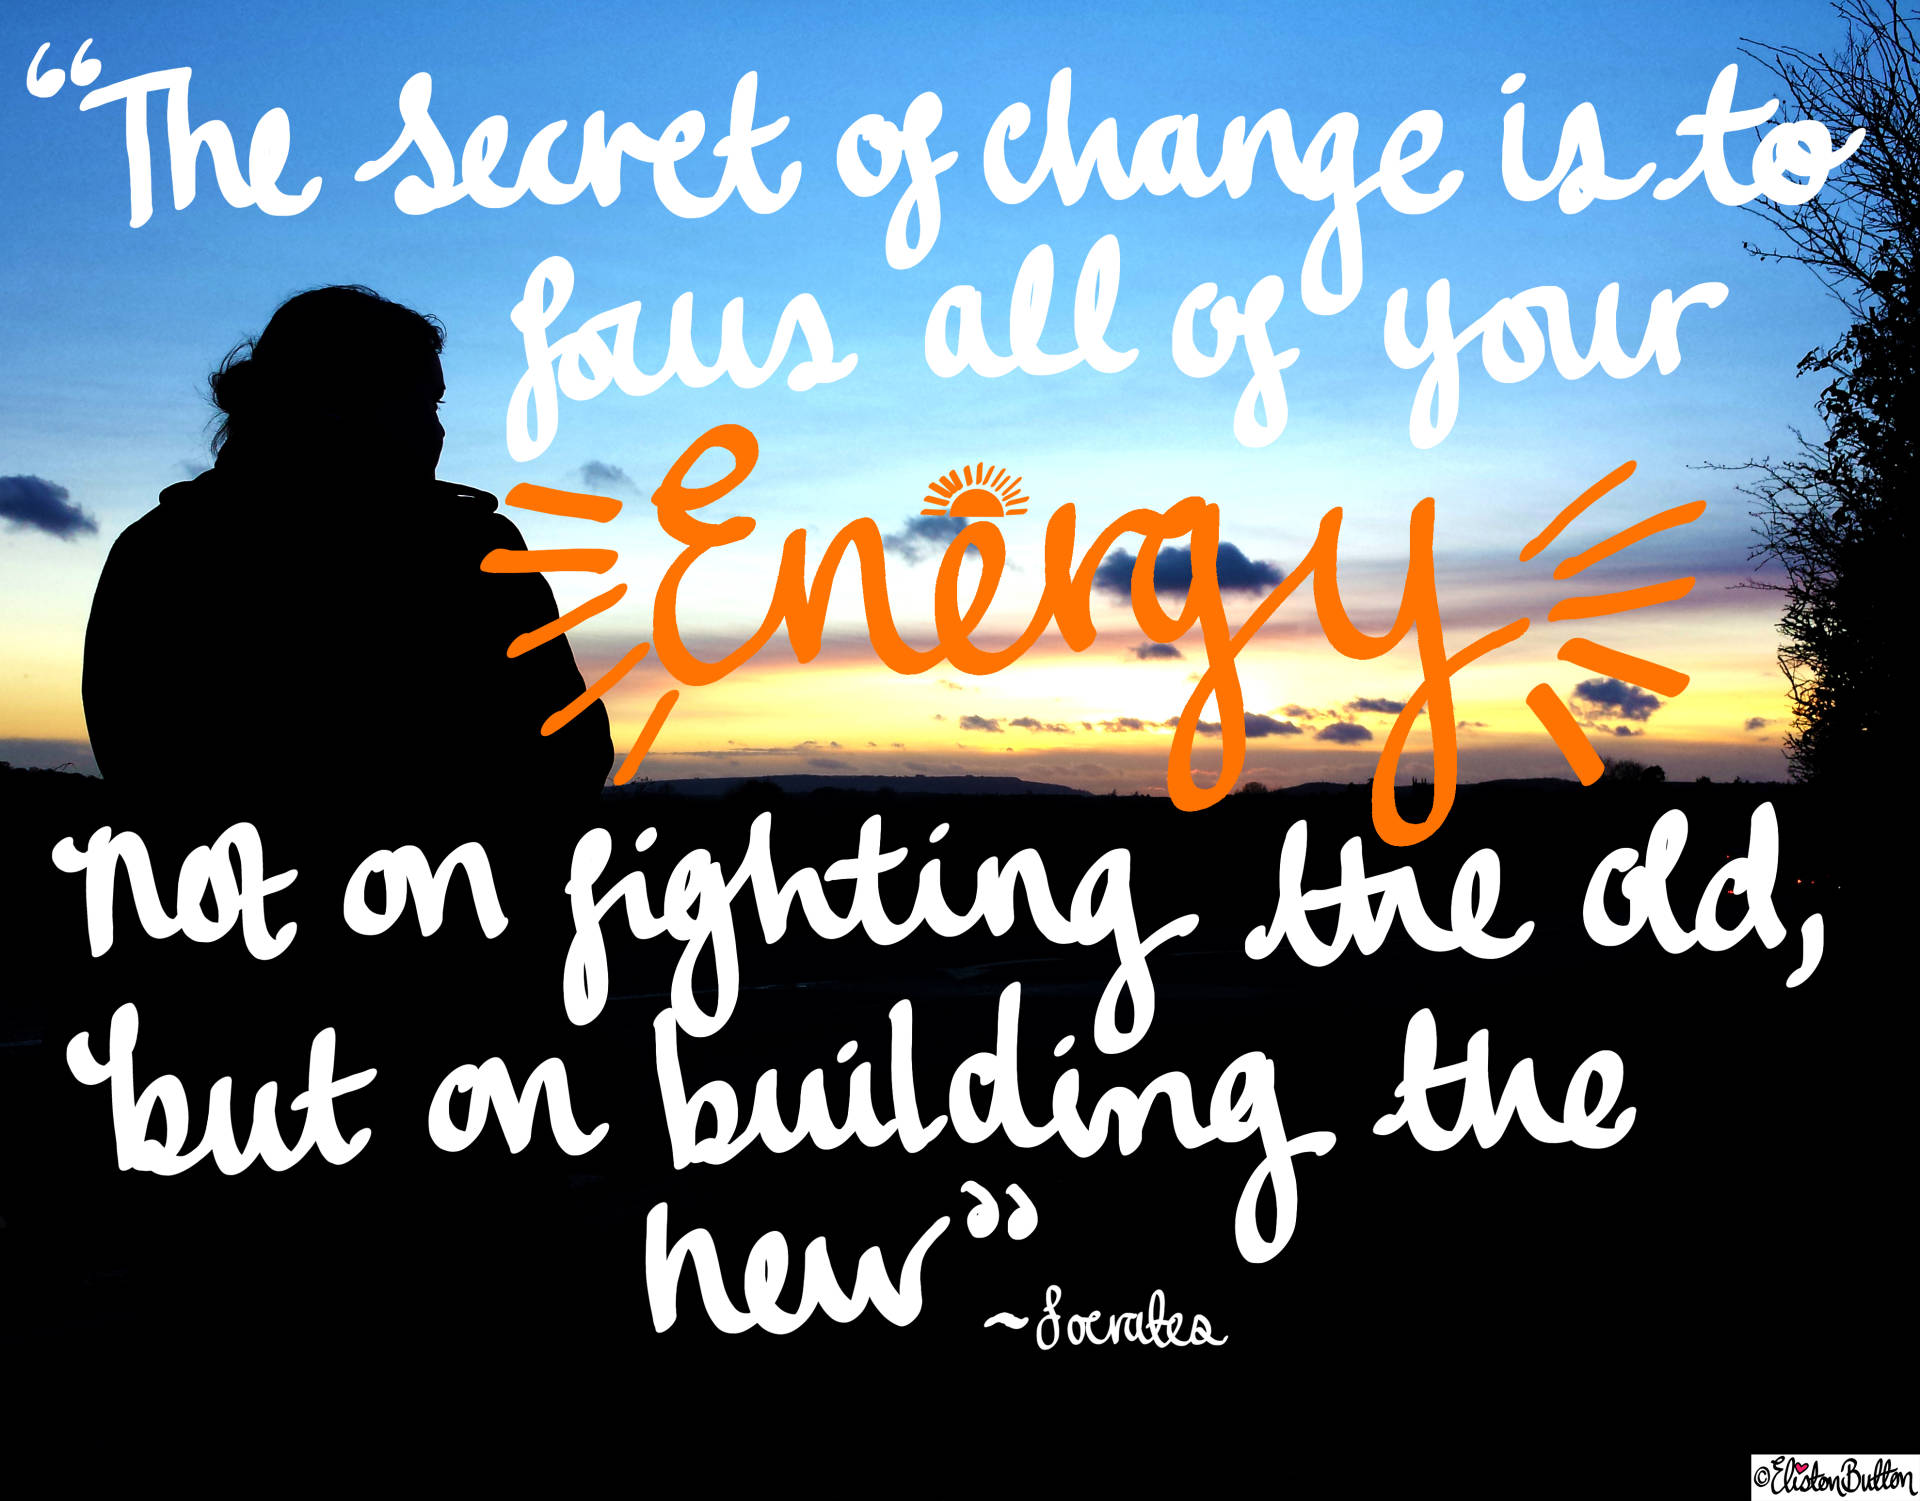 Secret of Change - Socrates Hand Lettered Quote and Sunset Photograph - Eliston Button Website Re-Design at www.elistonbutton.com - Eliston Button - That Crafty Kid – Art, Design, Craft & Adventure.